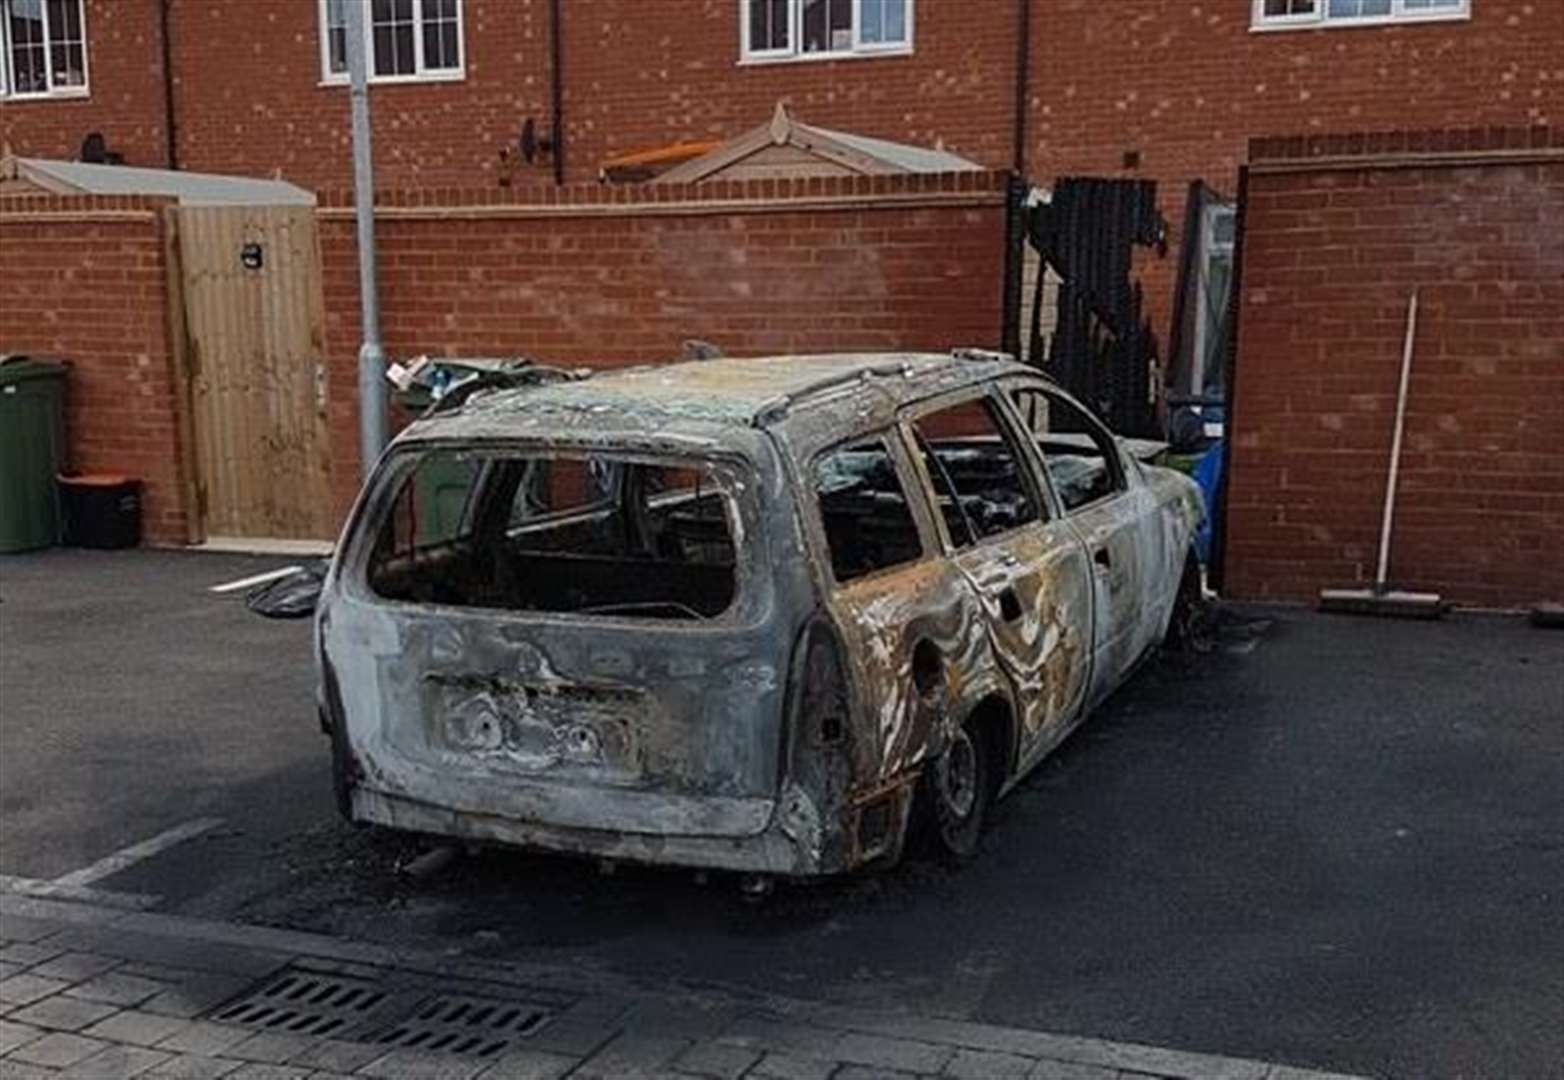 Car destroyed in suspected arson attack